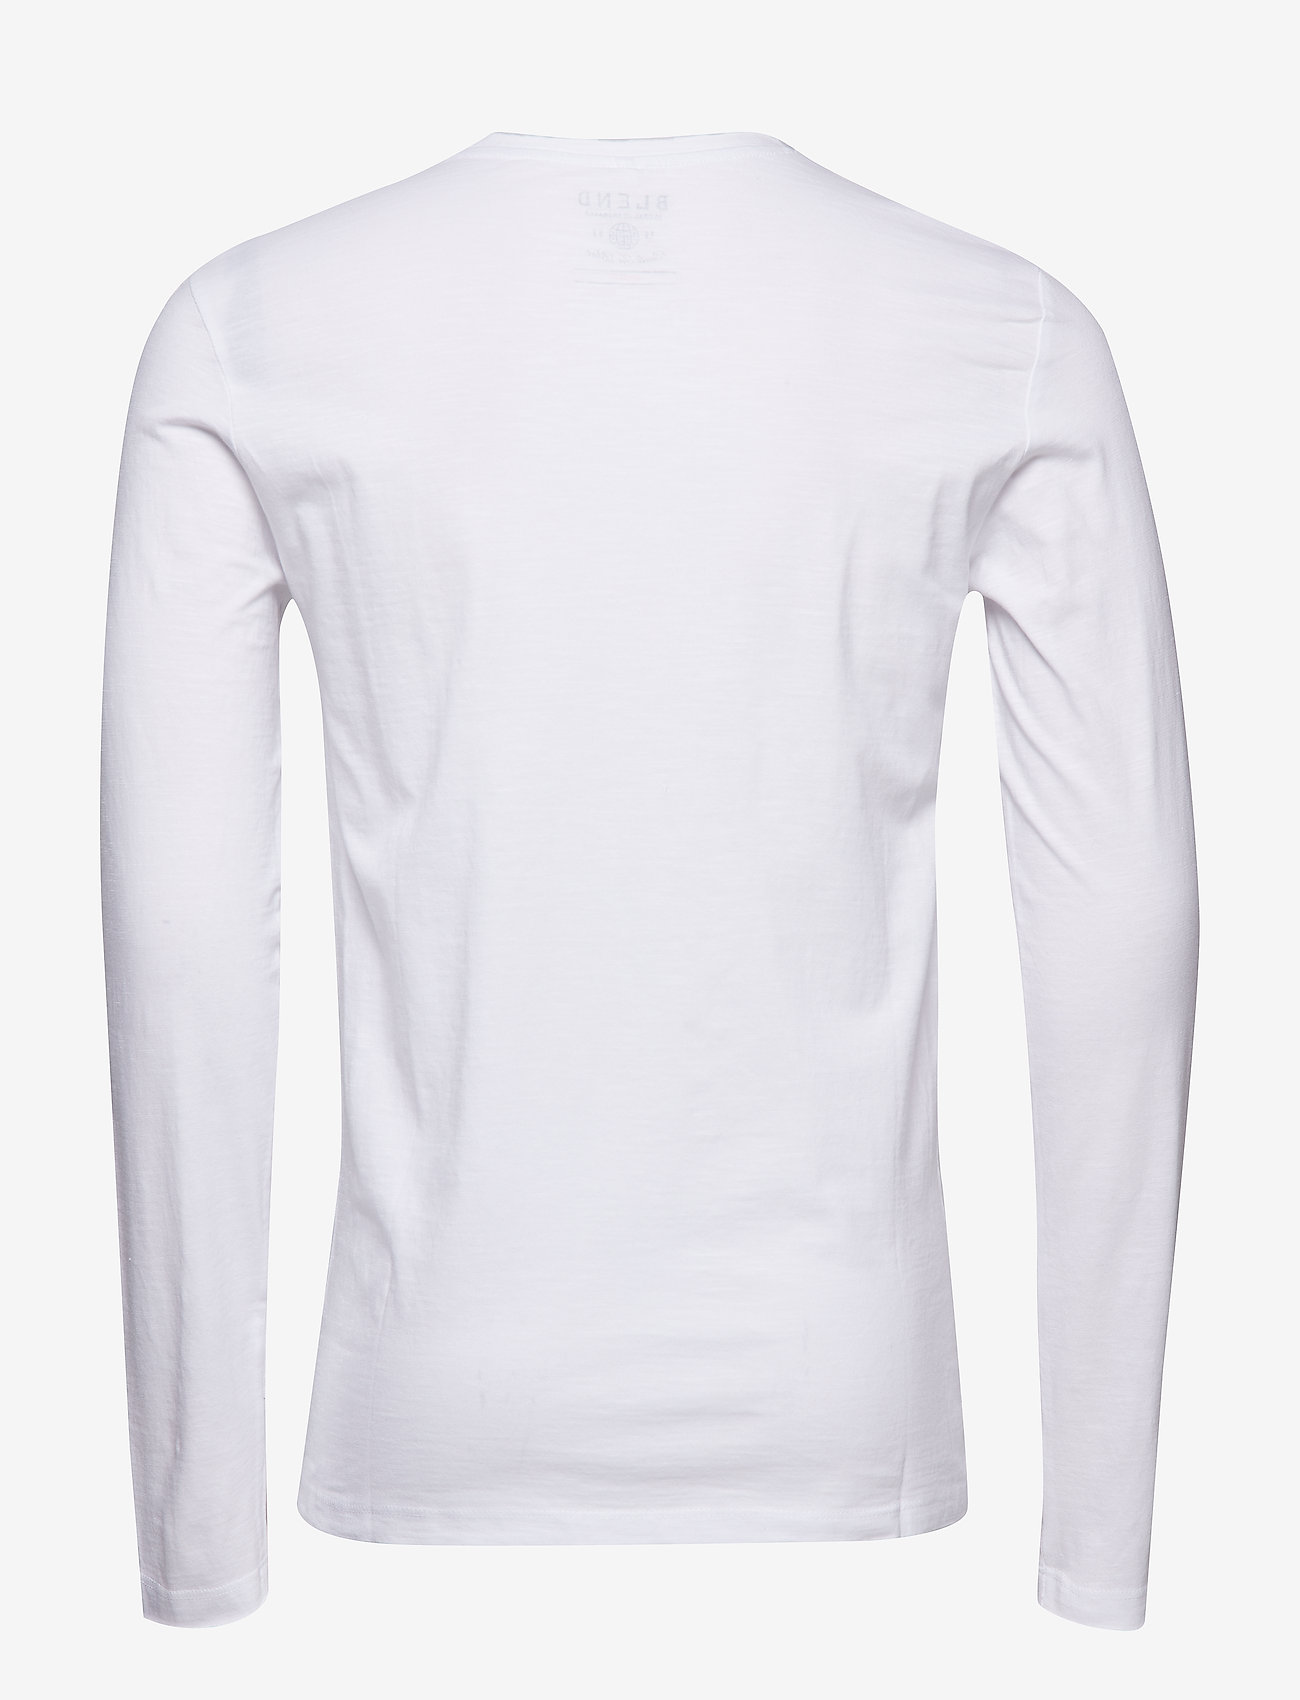 Blend - BHNICOLAI tee l.s. NOOS - basic t-shirts - white - 1